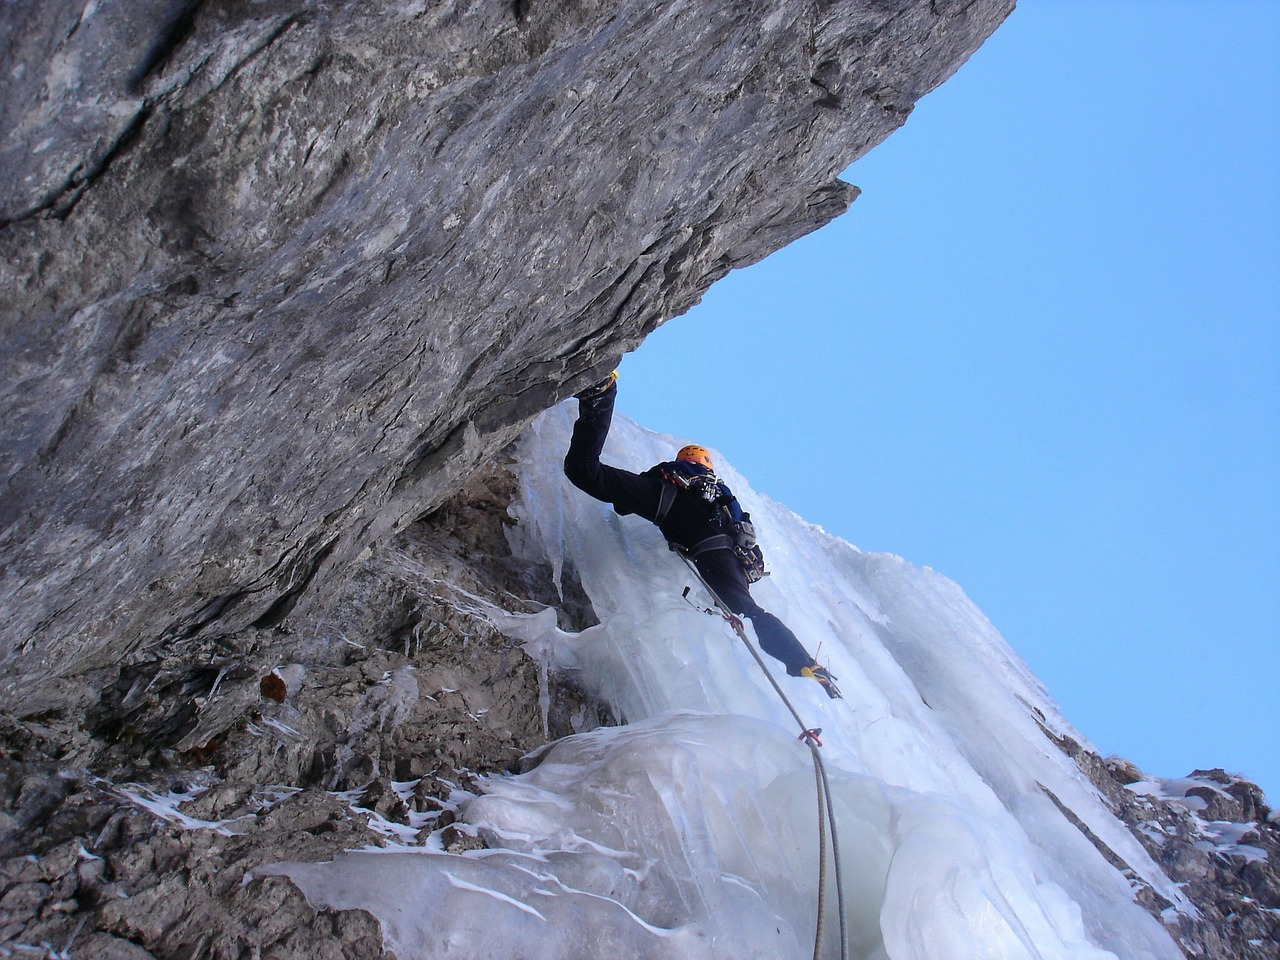 ice climbing,alpinism,bergsport,alpine,climb,mountains,ice,cold,waterfall,frozen,icefall,free pictures, free photos, free images, royalty free, free illustrations, public domain